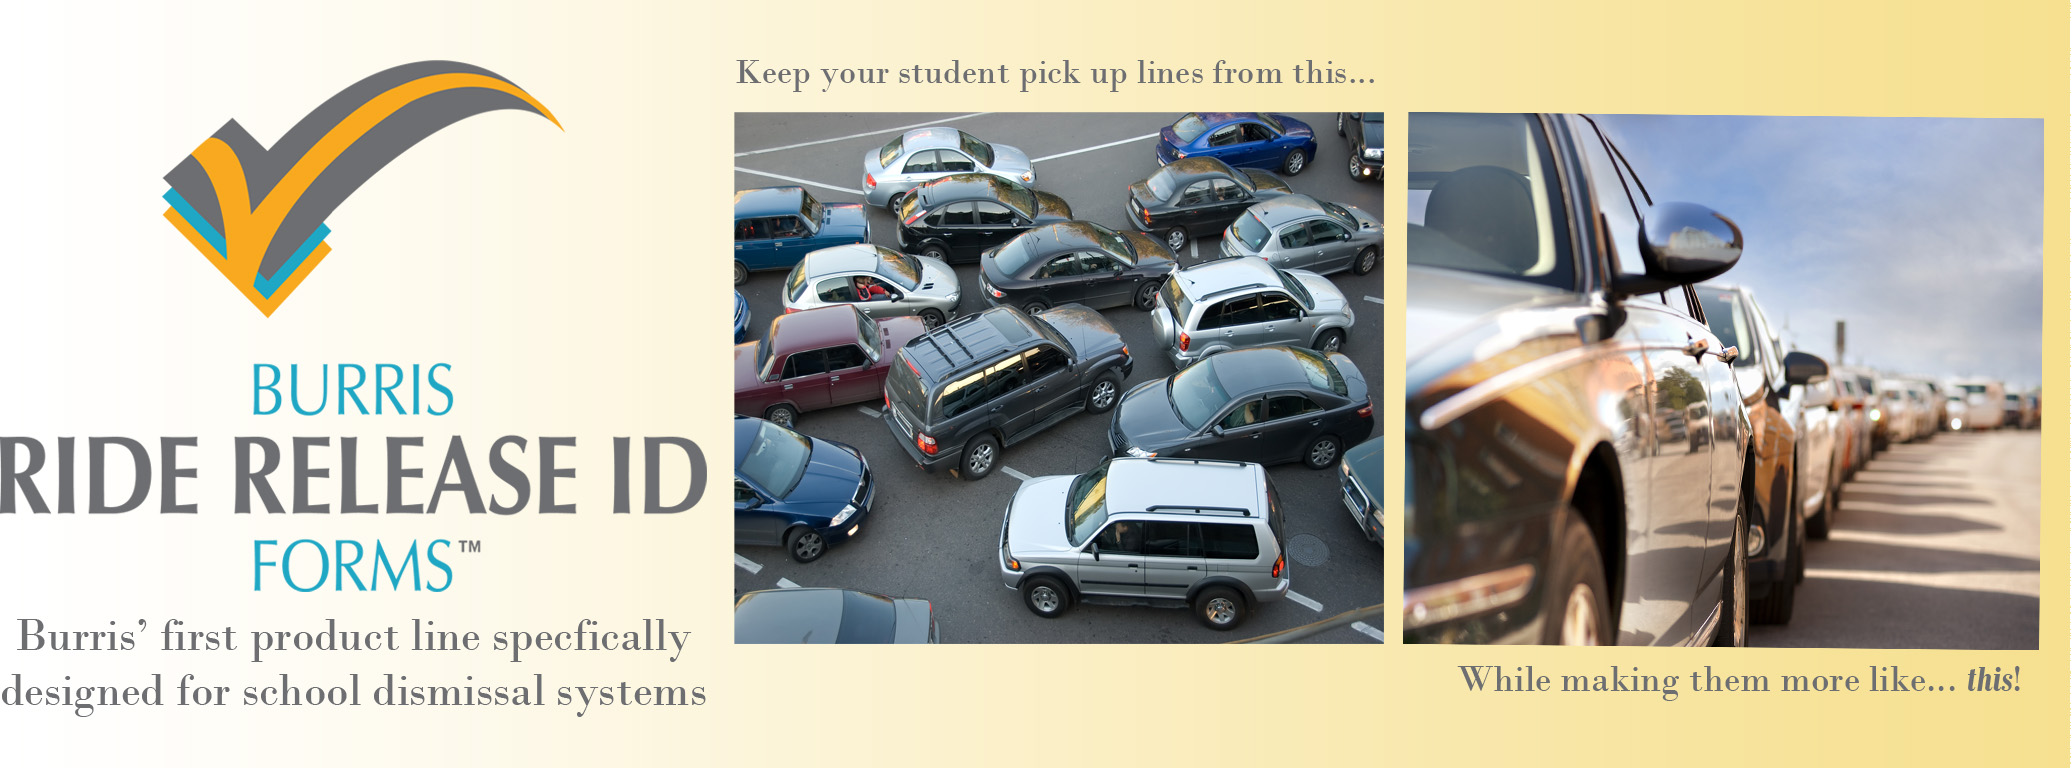 Burris products for student car line pickup systems and software